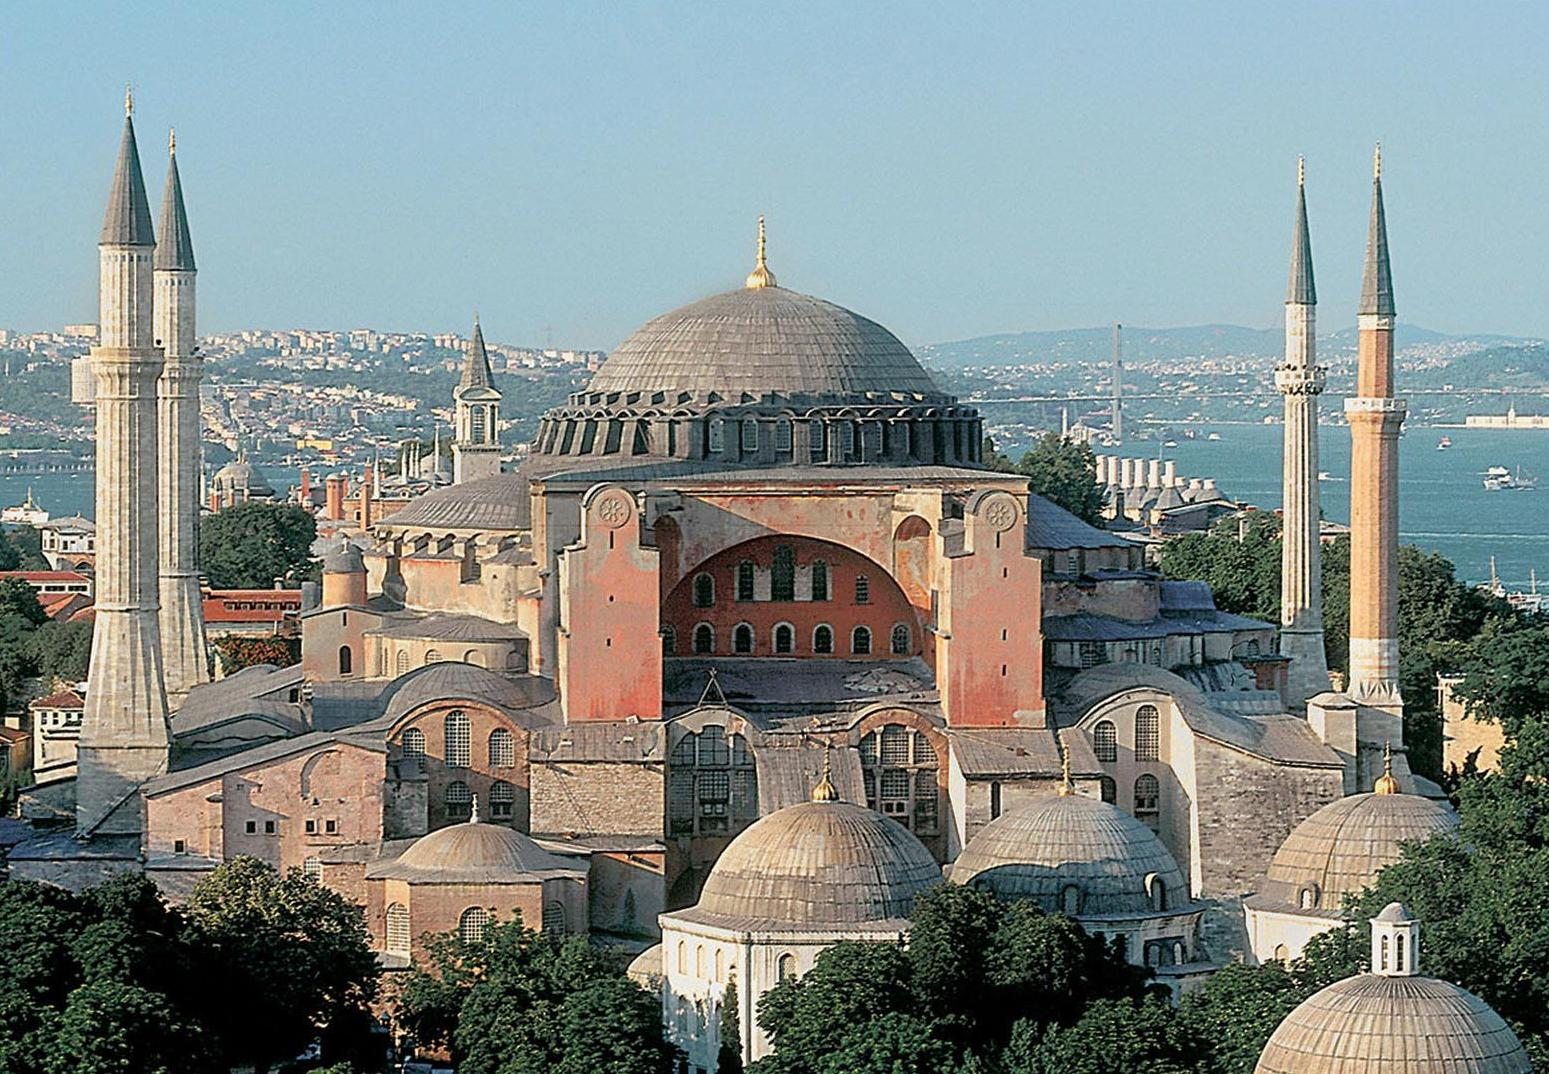 Hagia Sophia, the great cathedral of Holy Wisdom, was built by the emperor Justinian and was the largest dome in the world until the Astrodome was built. The minarets were added by the Turks when they converted the cathedral into a mosque after they captured the city in 1453.